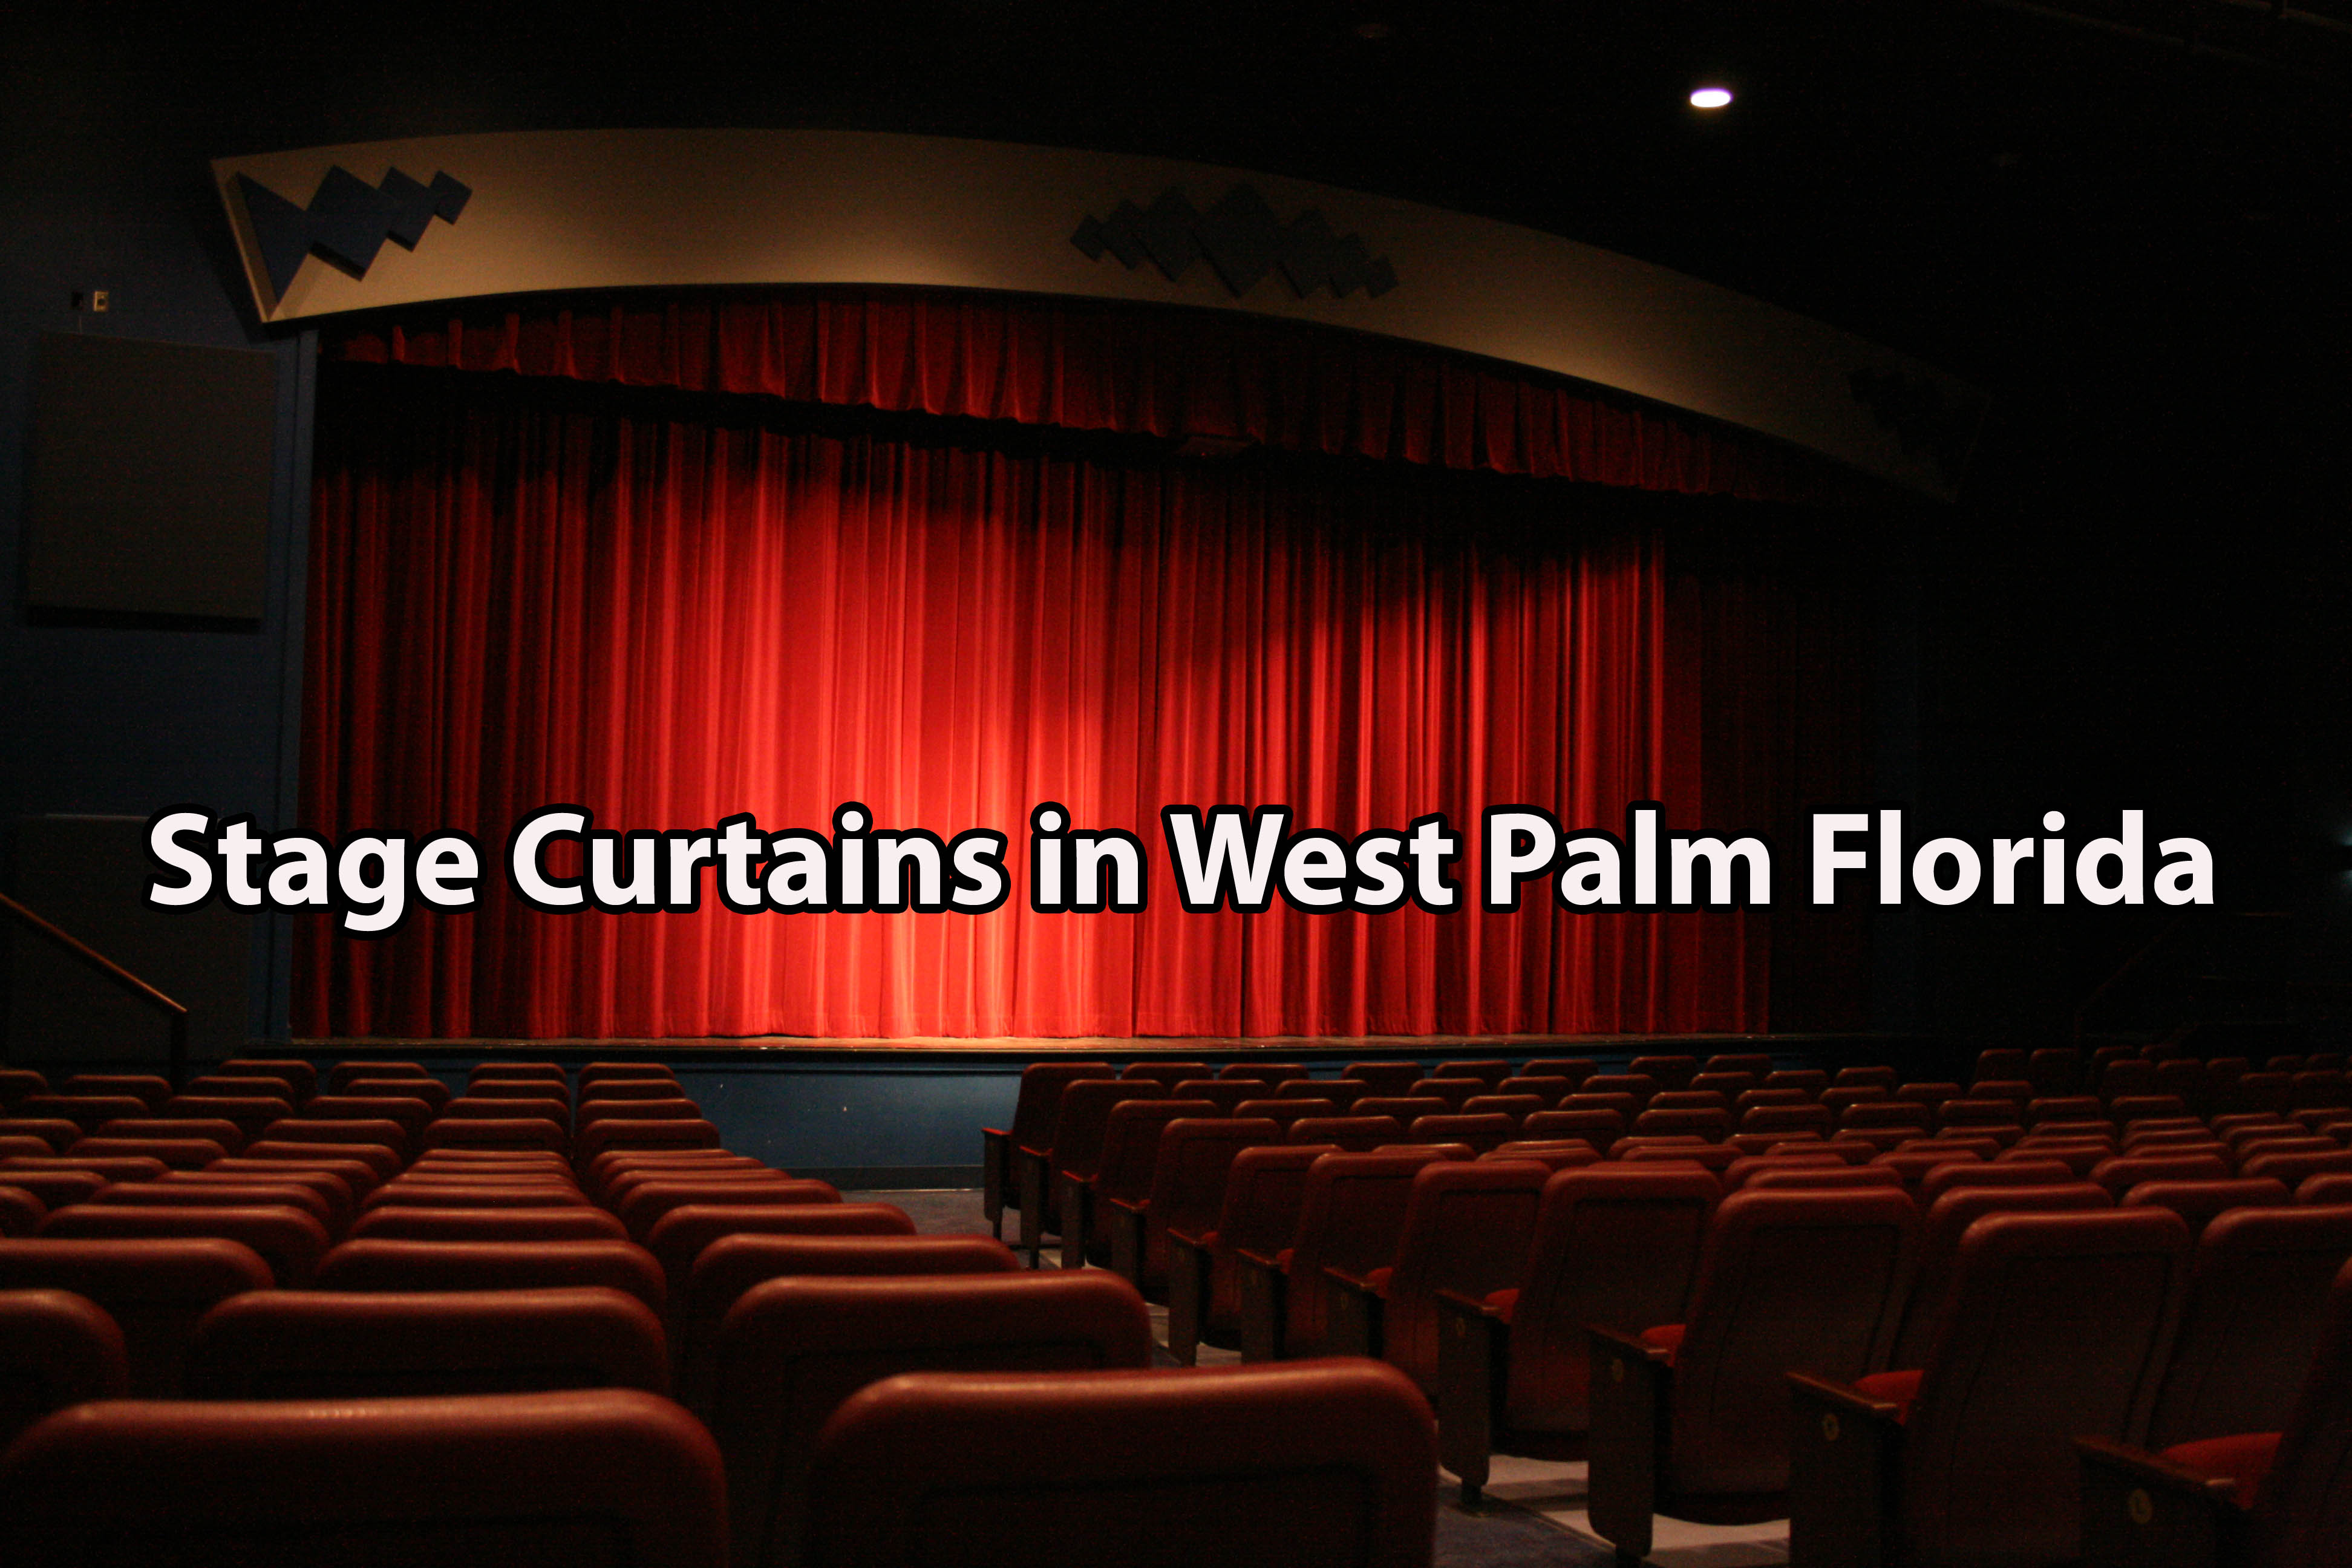 Stage Curtains in West Palm Florida